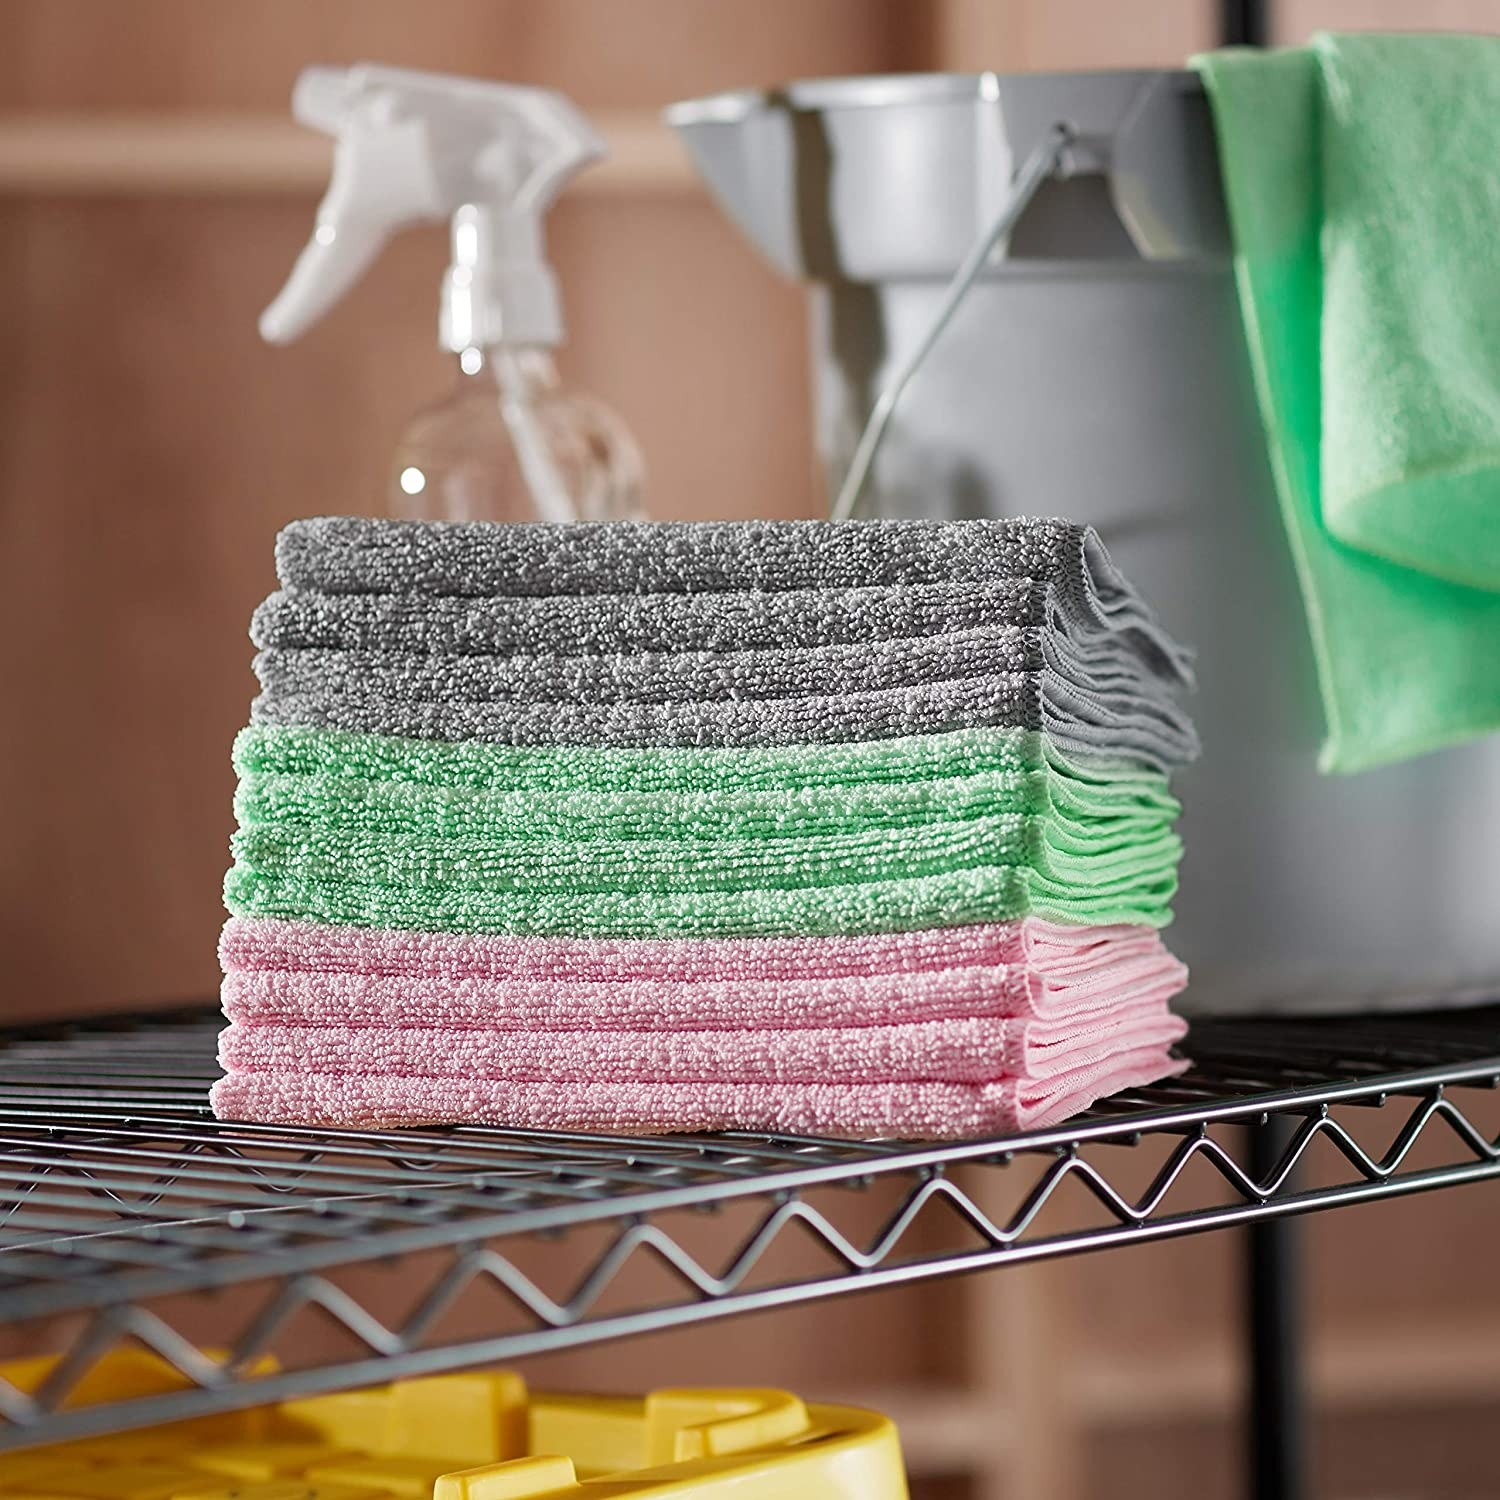 A stack of the grey, green, and pink microfiber cloths on a shelf next to cleaning supplies